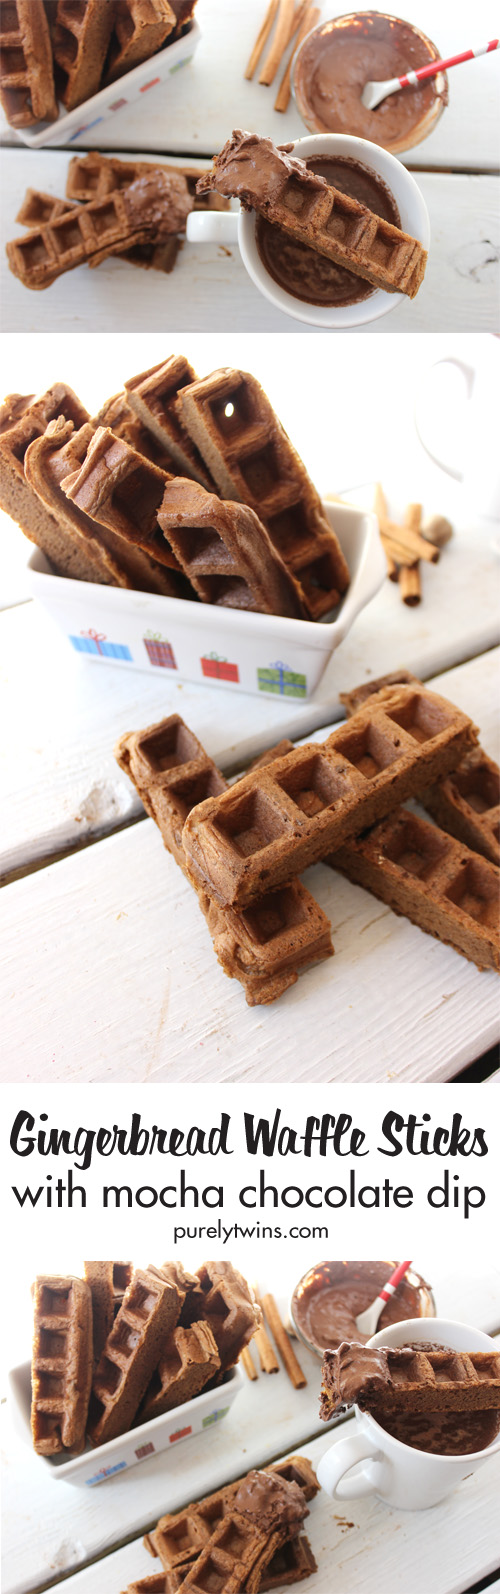 Breakfast made easy with gingerbread waffles that are cut to make waffle sticks. You won't believe what these super healthy and delicious waffle recipe is made out of!!